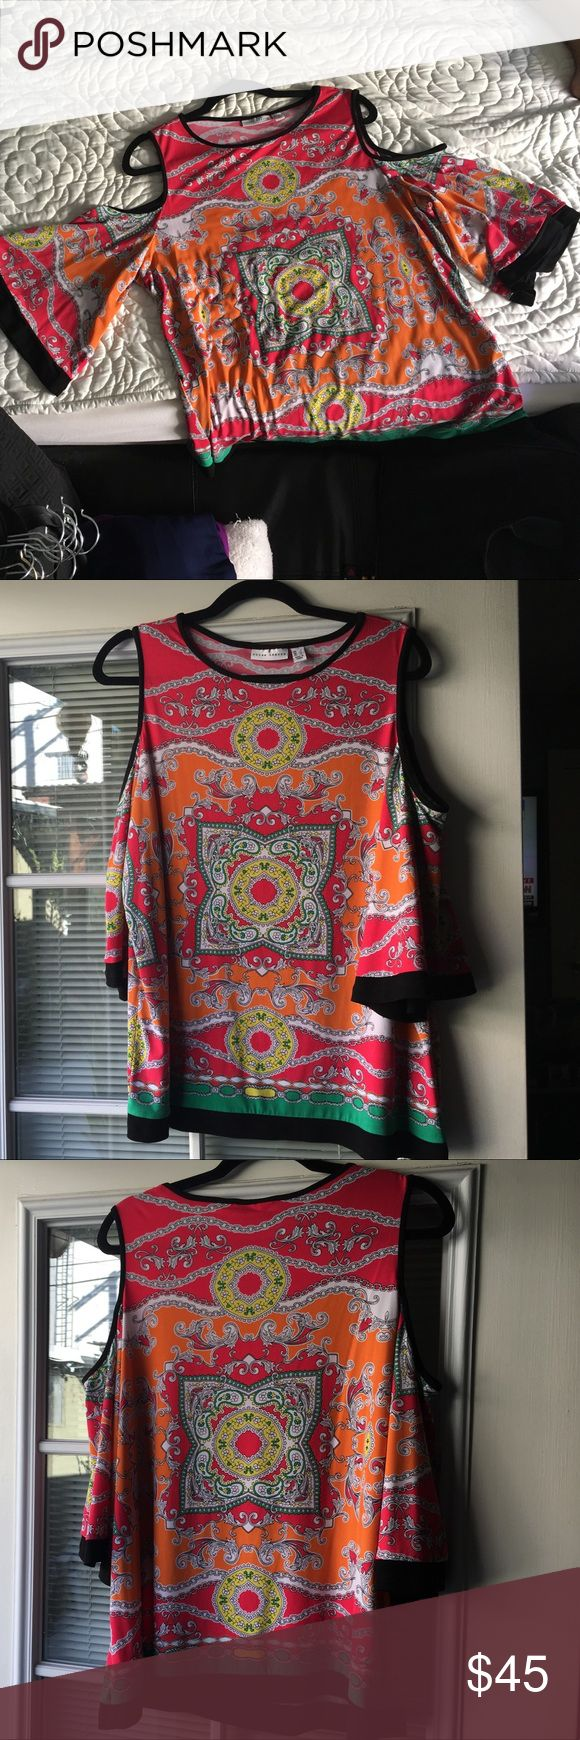 Women top Susan Graver, Size L,  95% polyester 5% spandex.  Print top.  Super cute.  Great for work or party.  No flaws.  Worn twice... in good shape. Susan Graver Tops Blouses